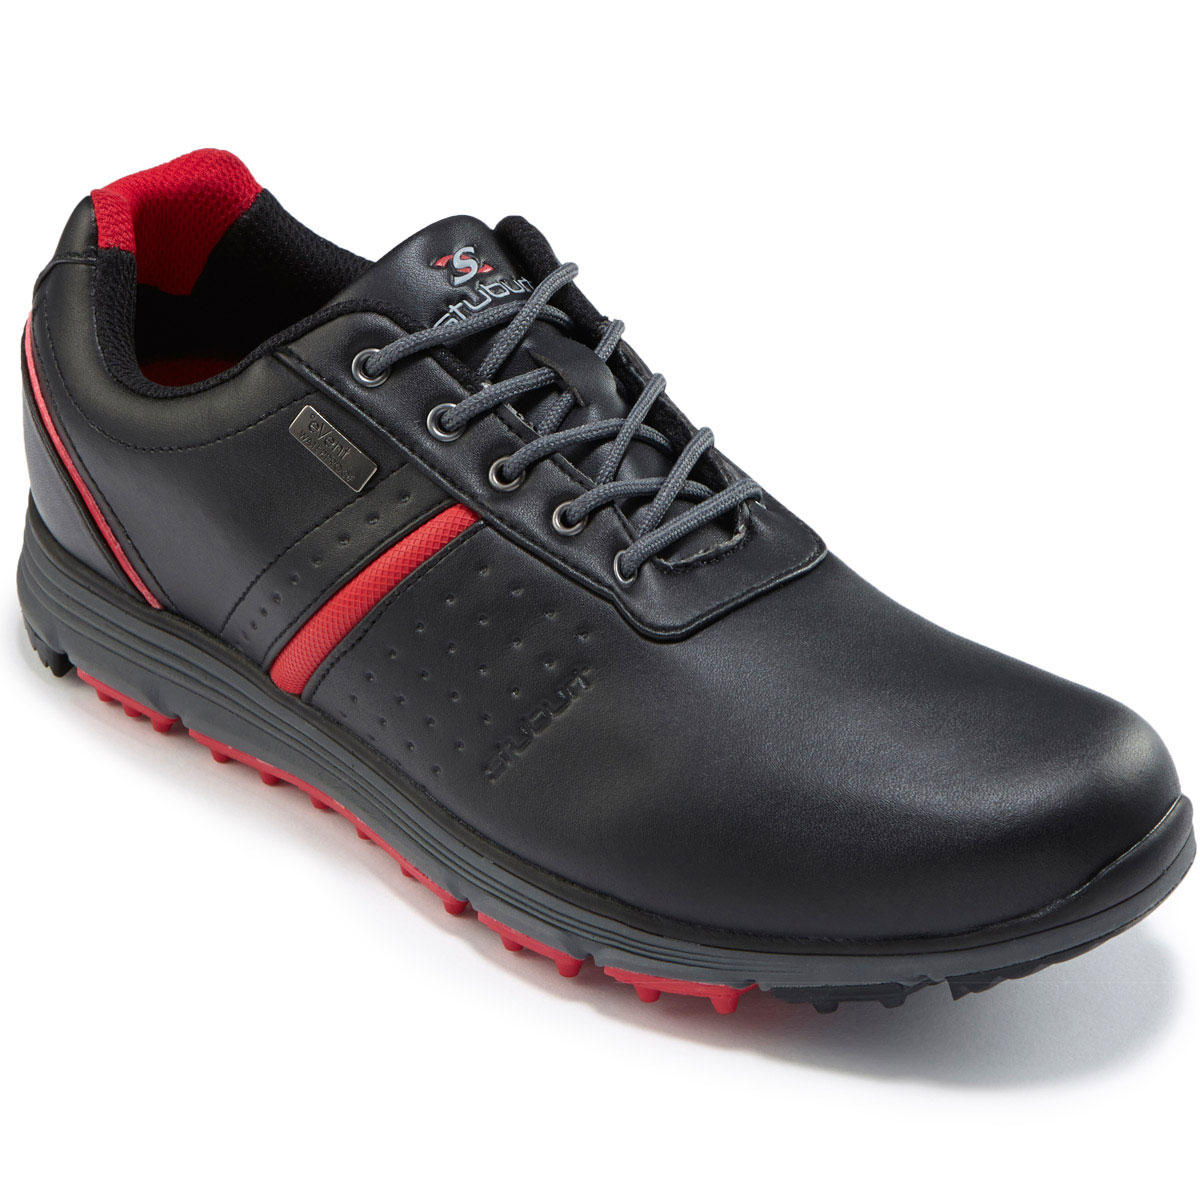 Footjoy Waterproof Golf Shoes